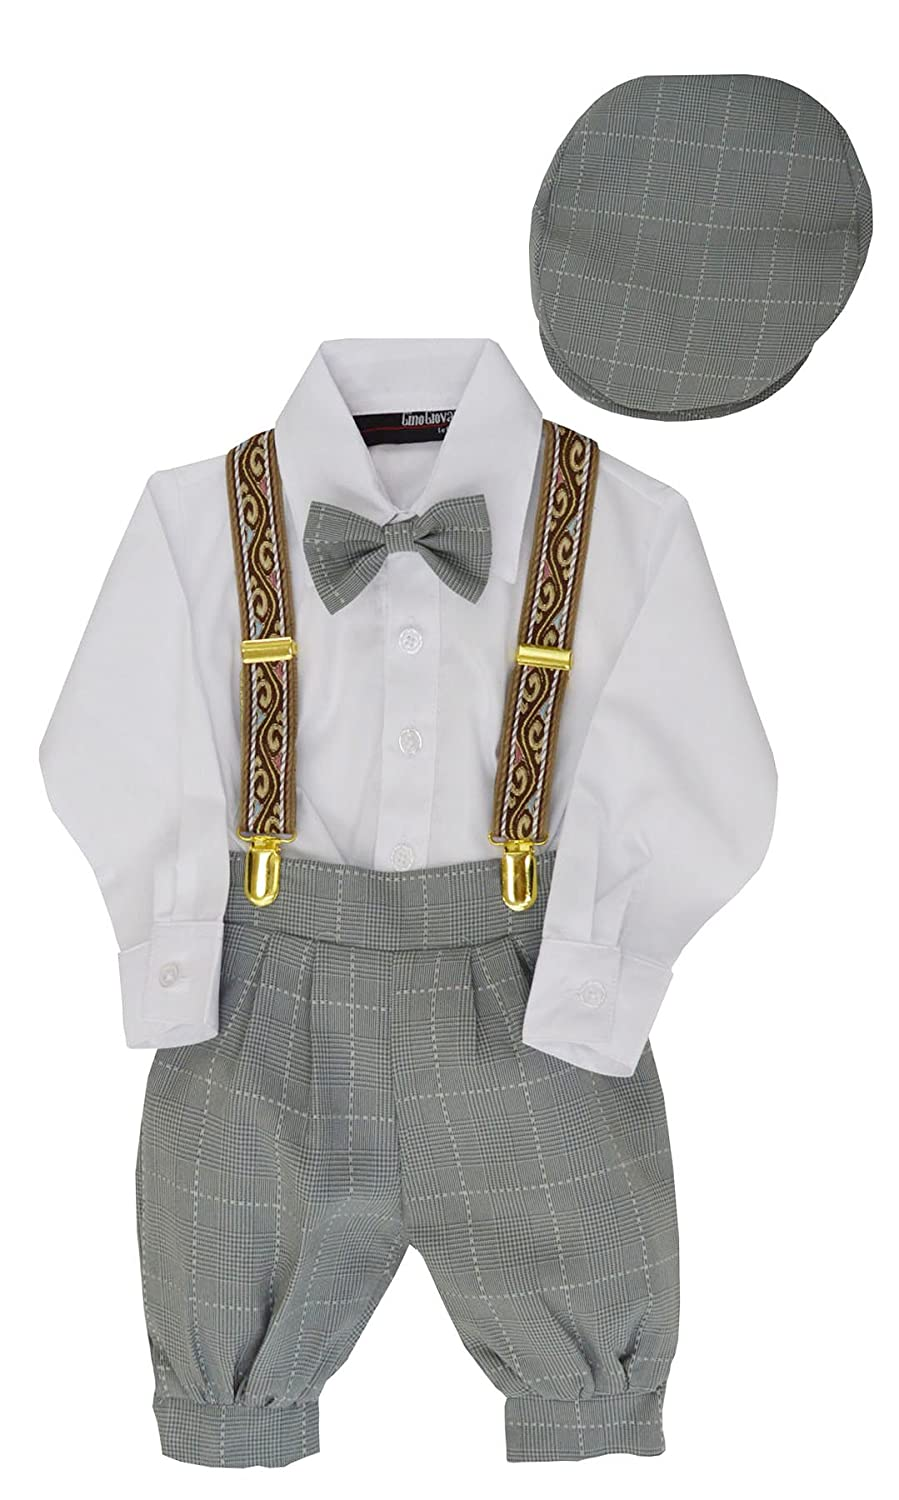 1930s Childrens Fashion: Girls, Boys, Toddler, Baby Costumes Gino Giovanni Boys Vintage Style Knickers Outfit Suspenders Set $29.99 AT vintagedancer.com